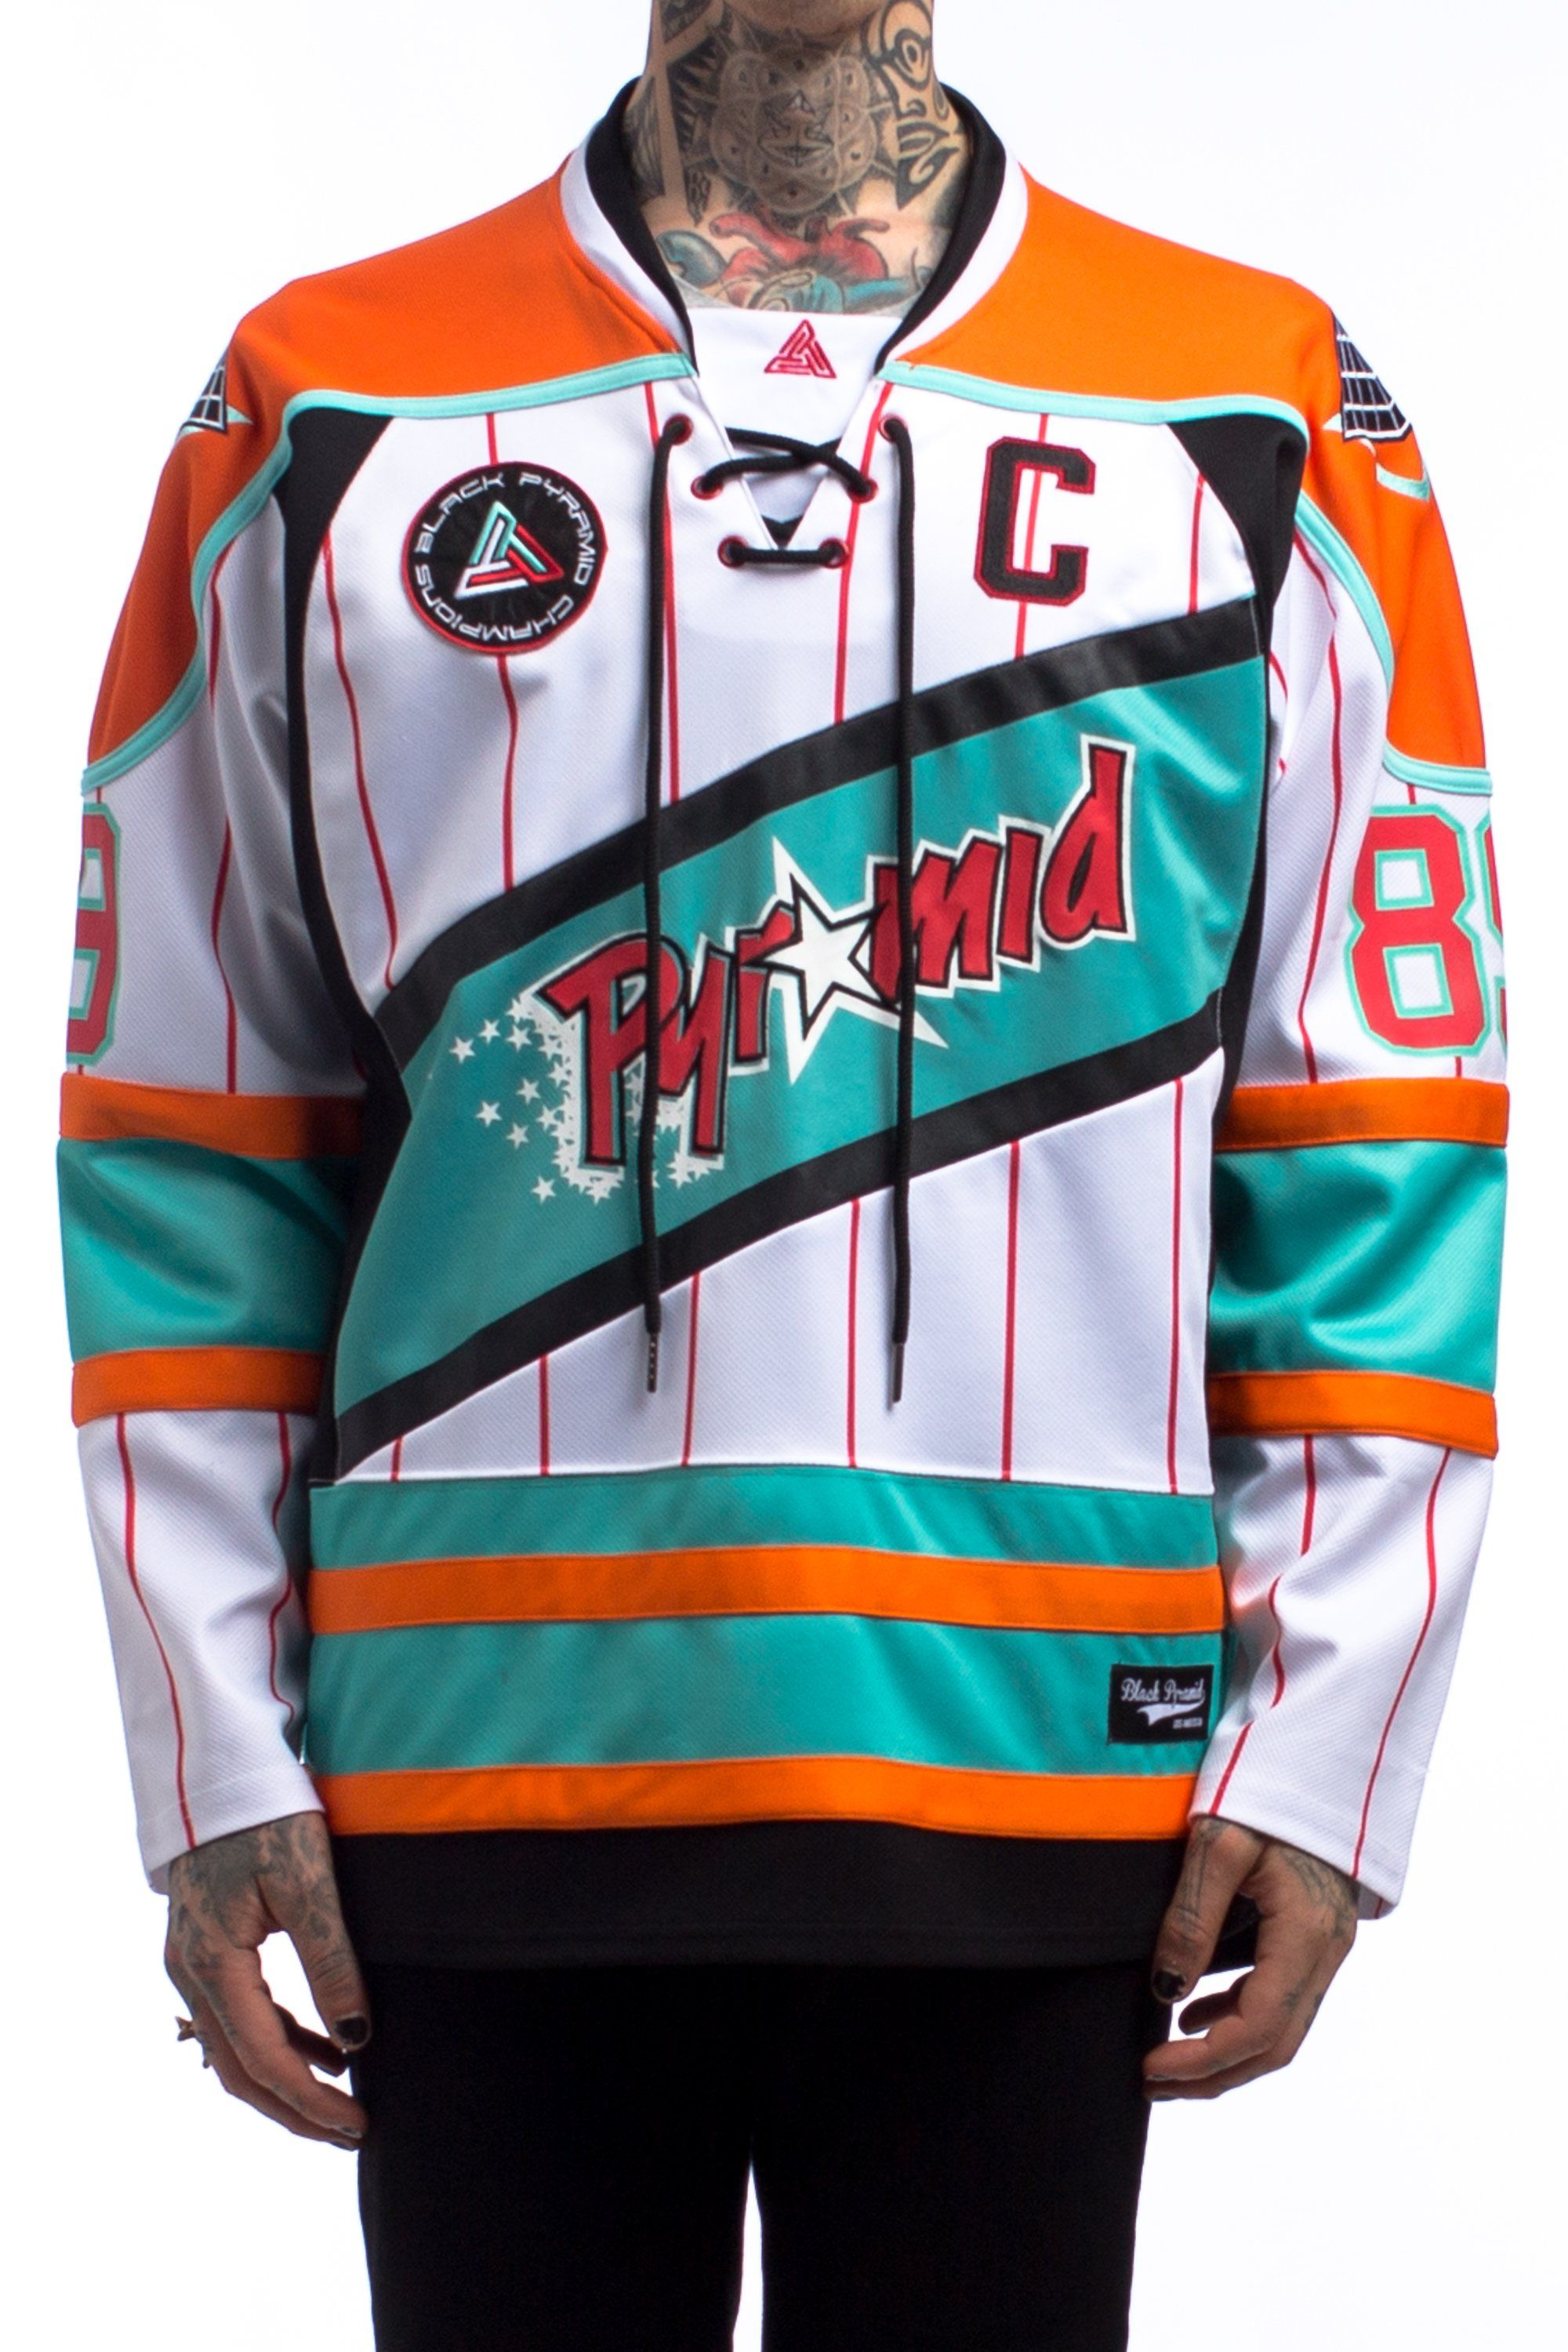 4f5da8454 BP Magic Hockey Jersey from Black Pyramid Store. Find this Pin and more on  Clothes ...